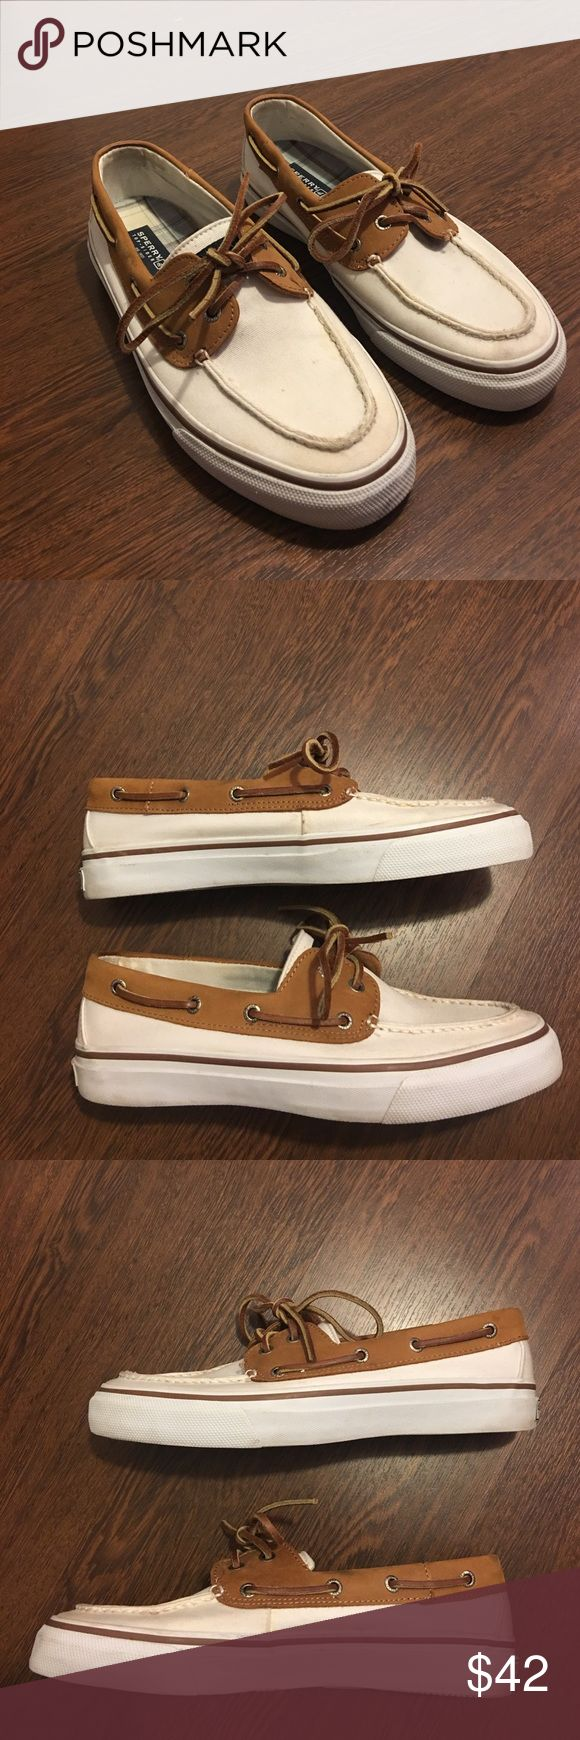 SALE Sperry Top-Sider Boat Shoes 9 1/2 Sperry Top-Sider Boat Shoes. Men's size 9 1/2. White and Brown. Lightly worn. In great shape Sperry Top-Sider Shoes Boat Shoes